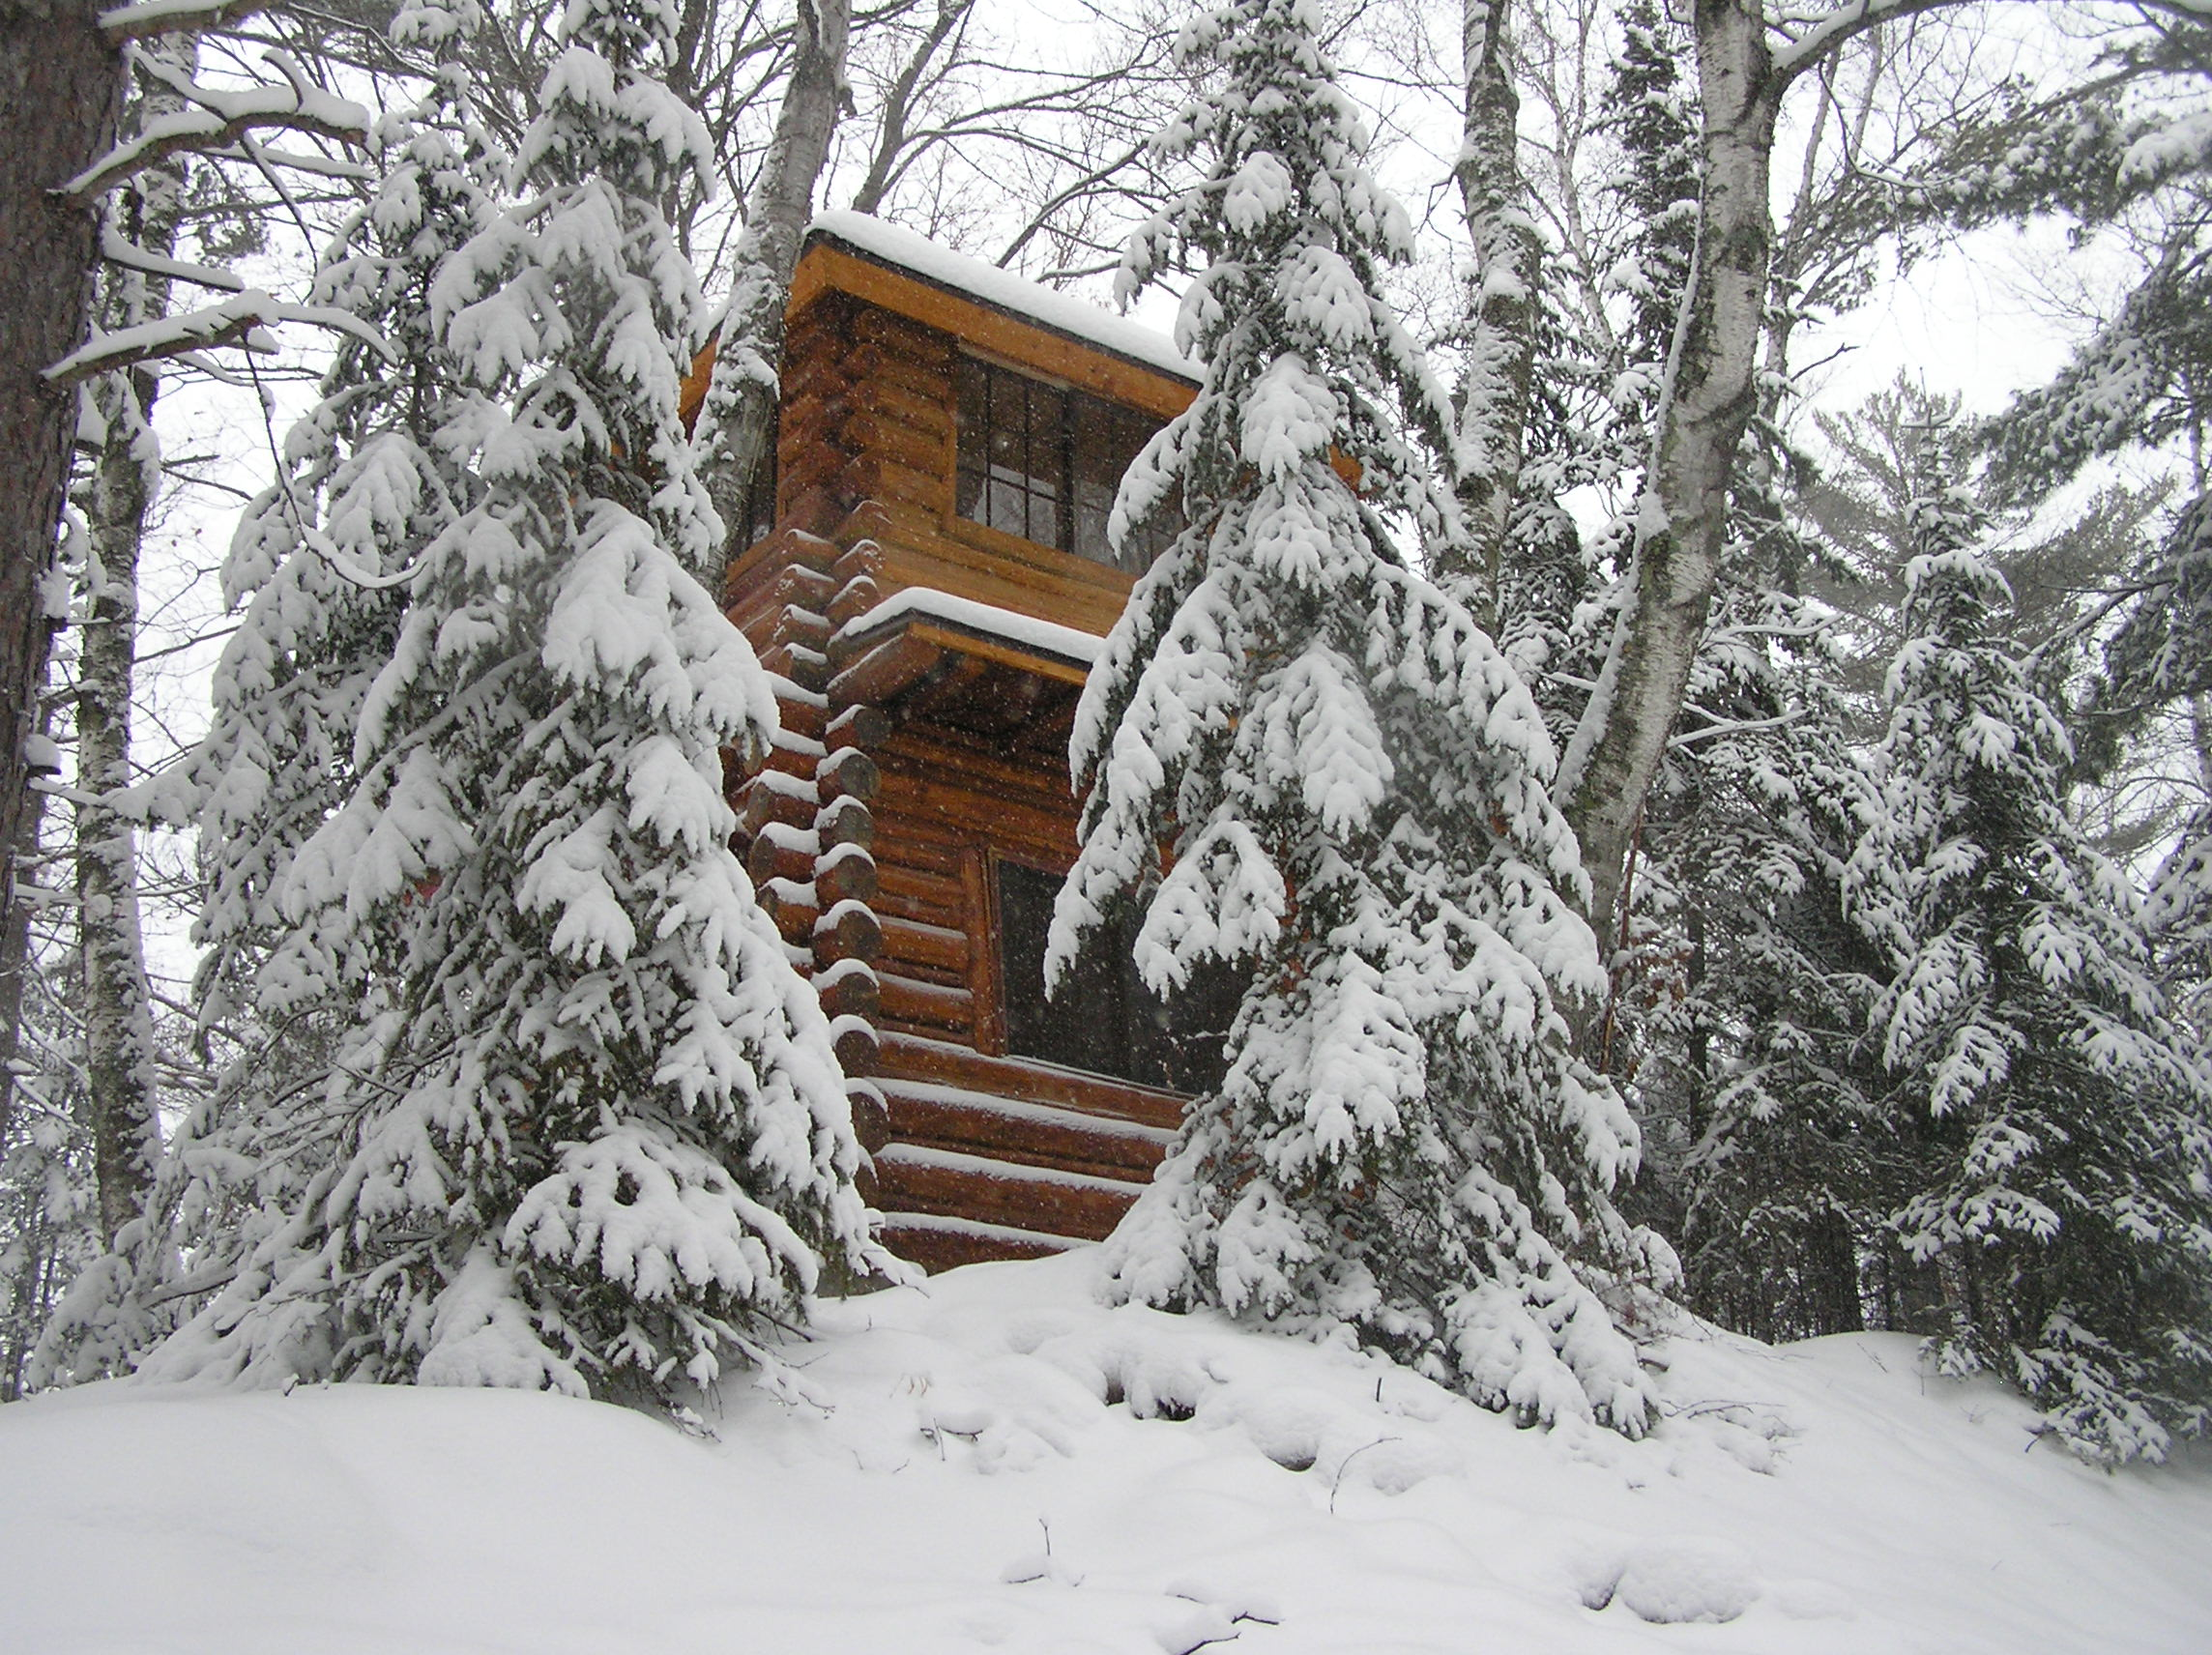 The Tower in the Winter